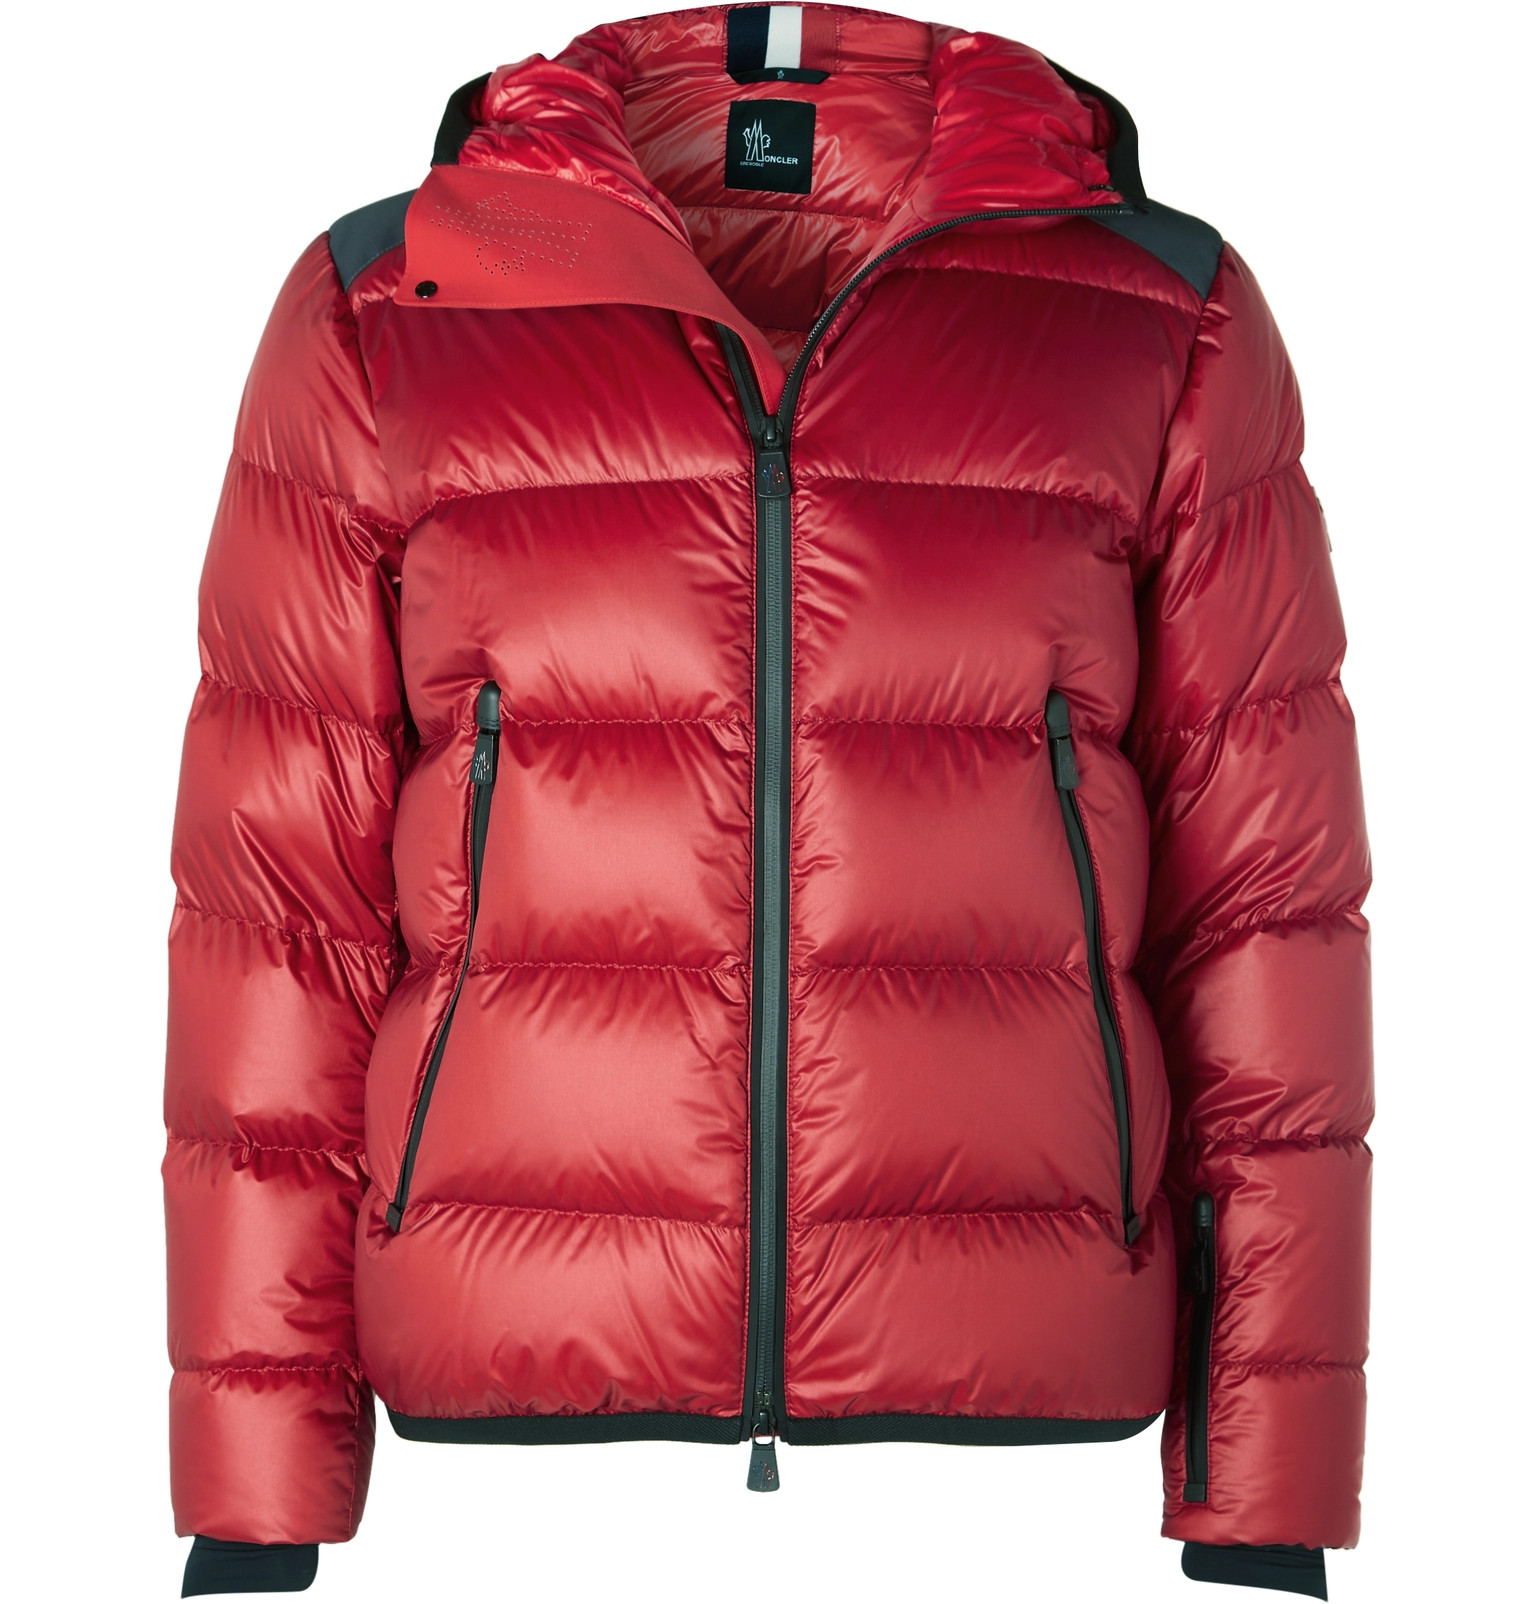 Moncler Grenoble - Hintertux Quilted Hooded Down Ski Jacket 5403d7226